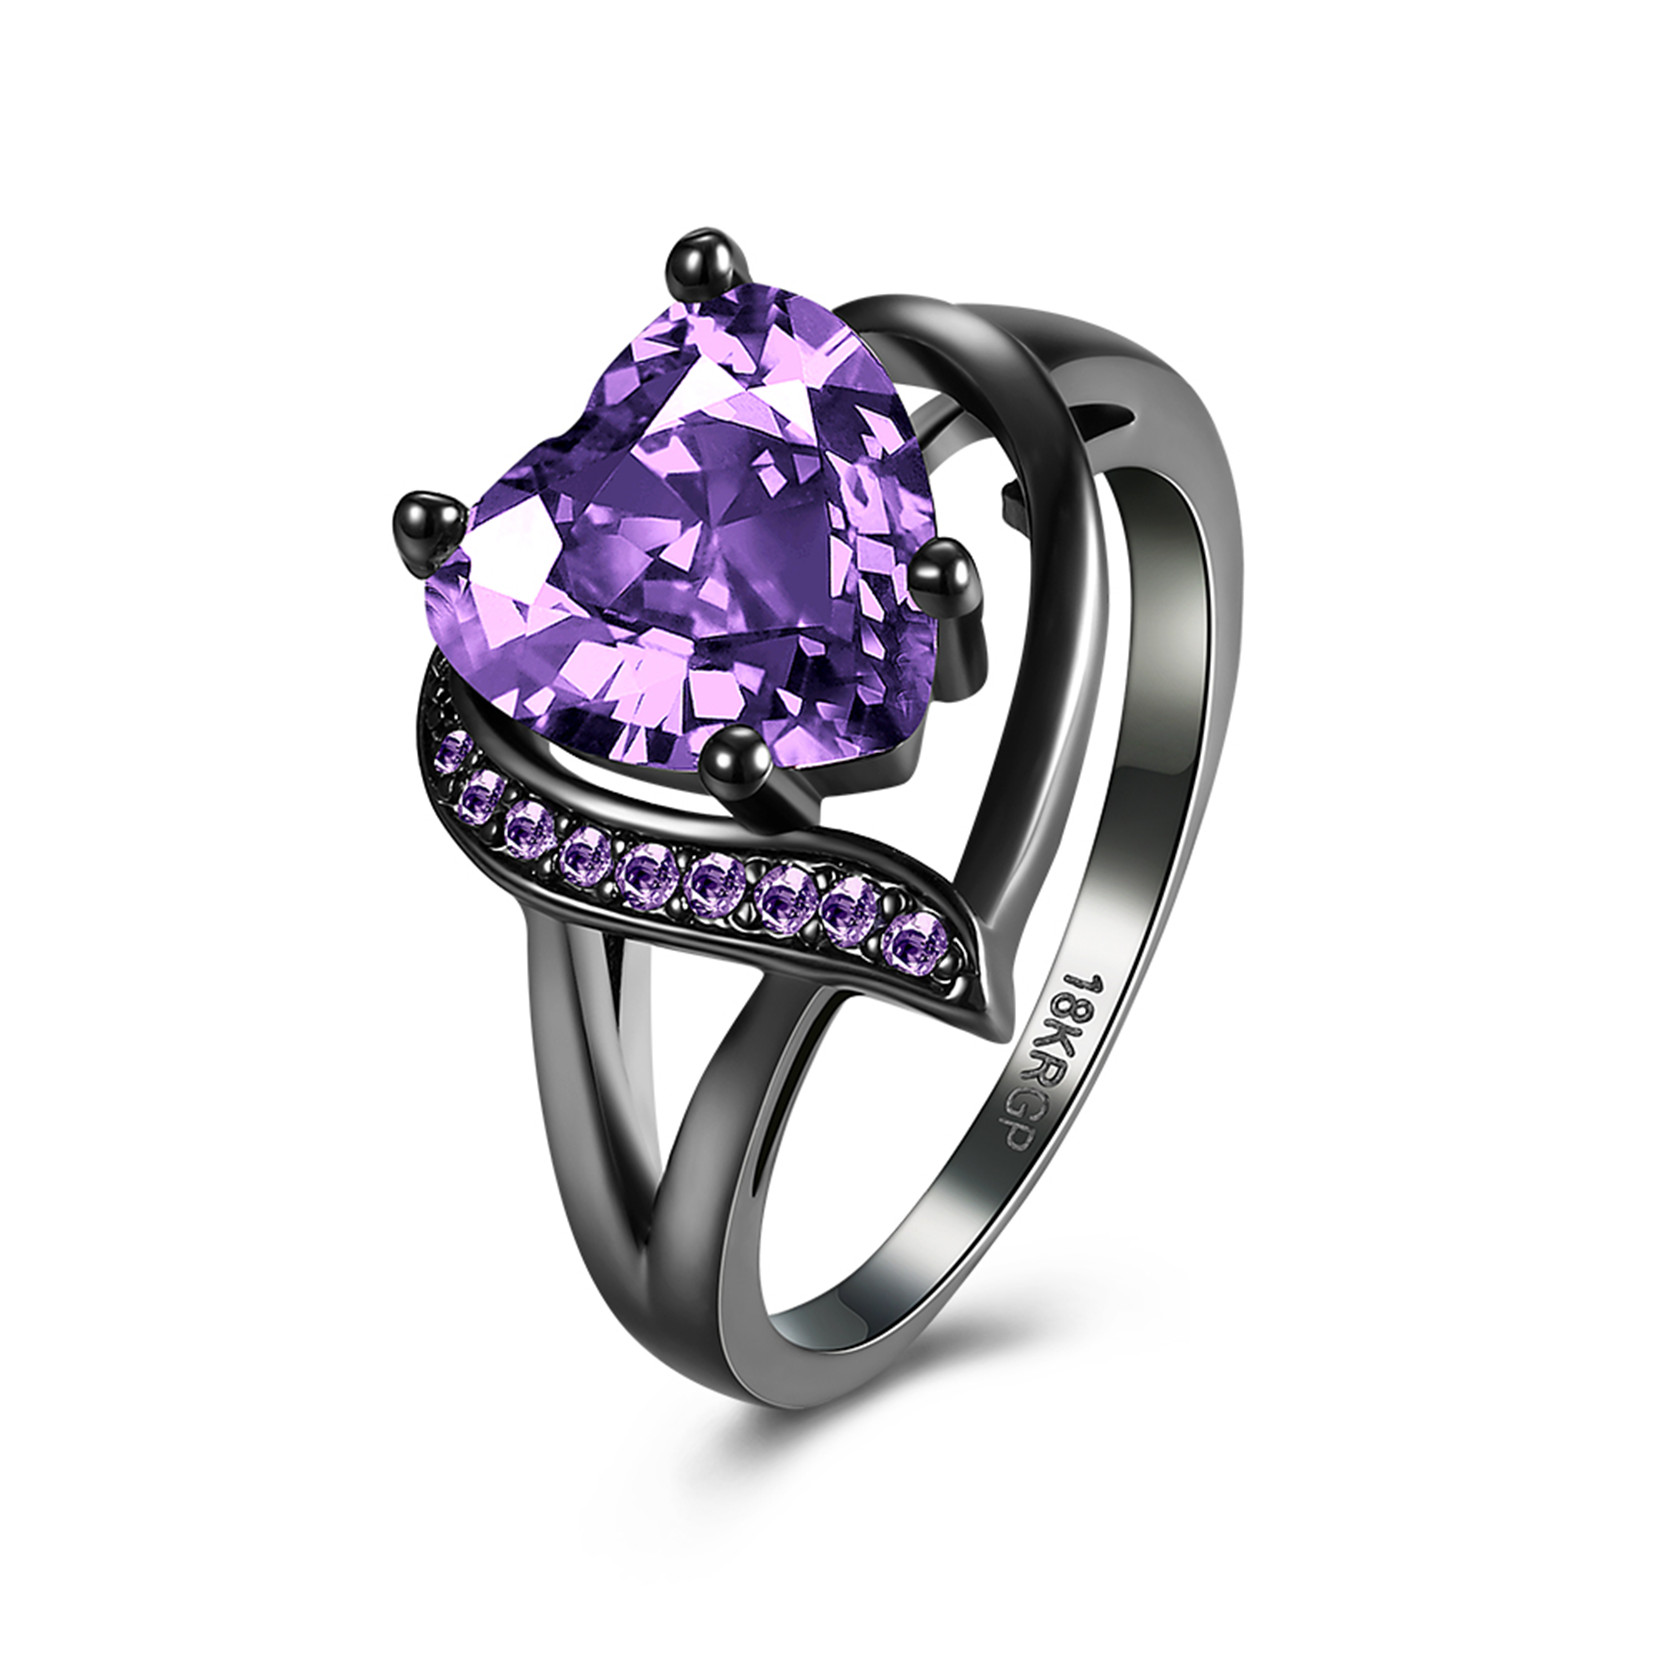 DROLE 2 Colors Vintage CZ Wedding Jewelry & Watches